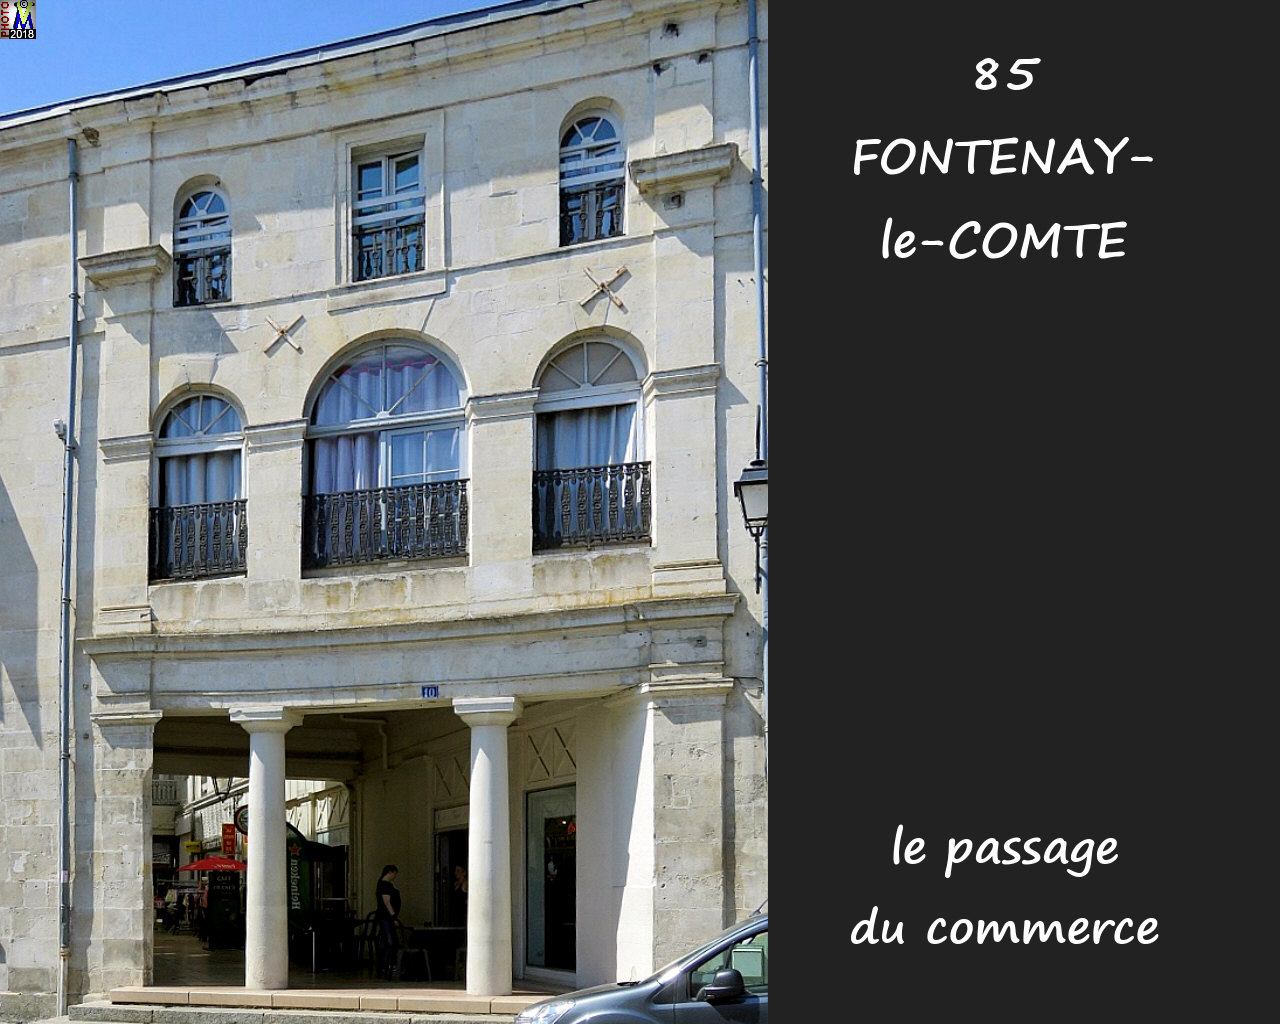 85FONTENAY-COMTE_commerce_1000.jpg